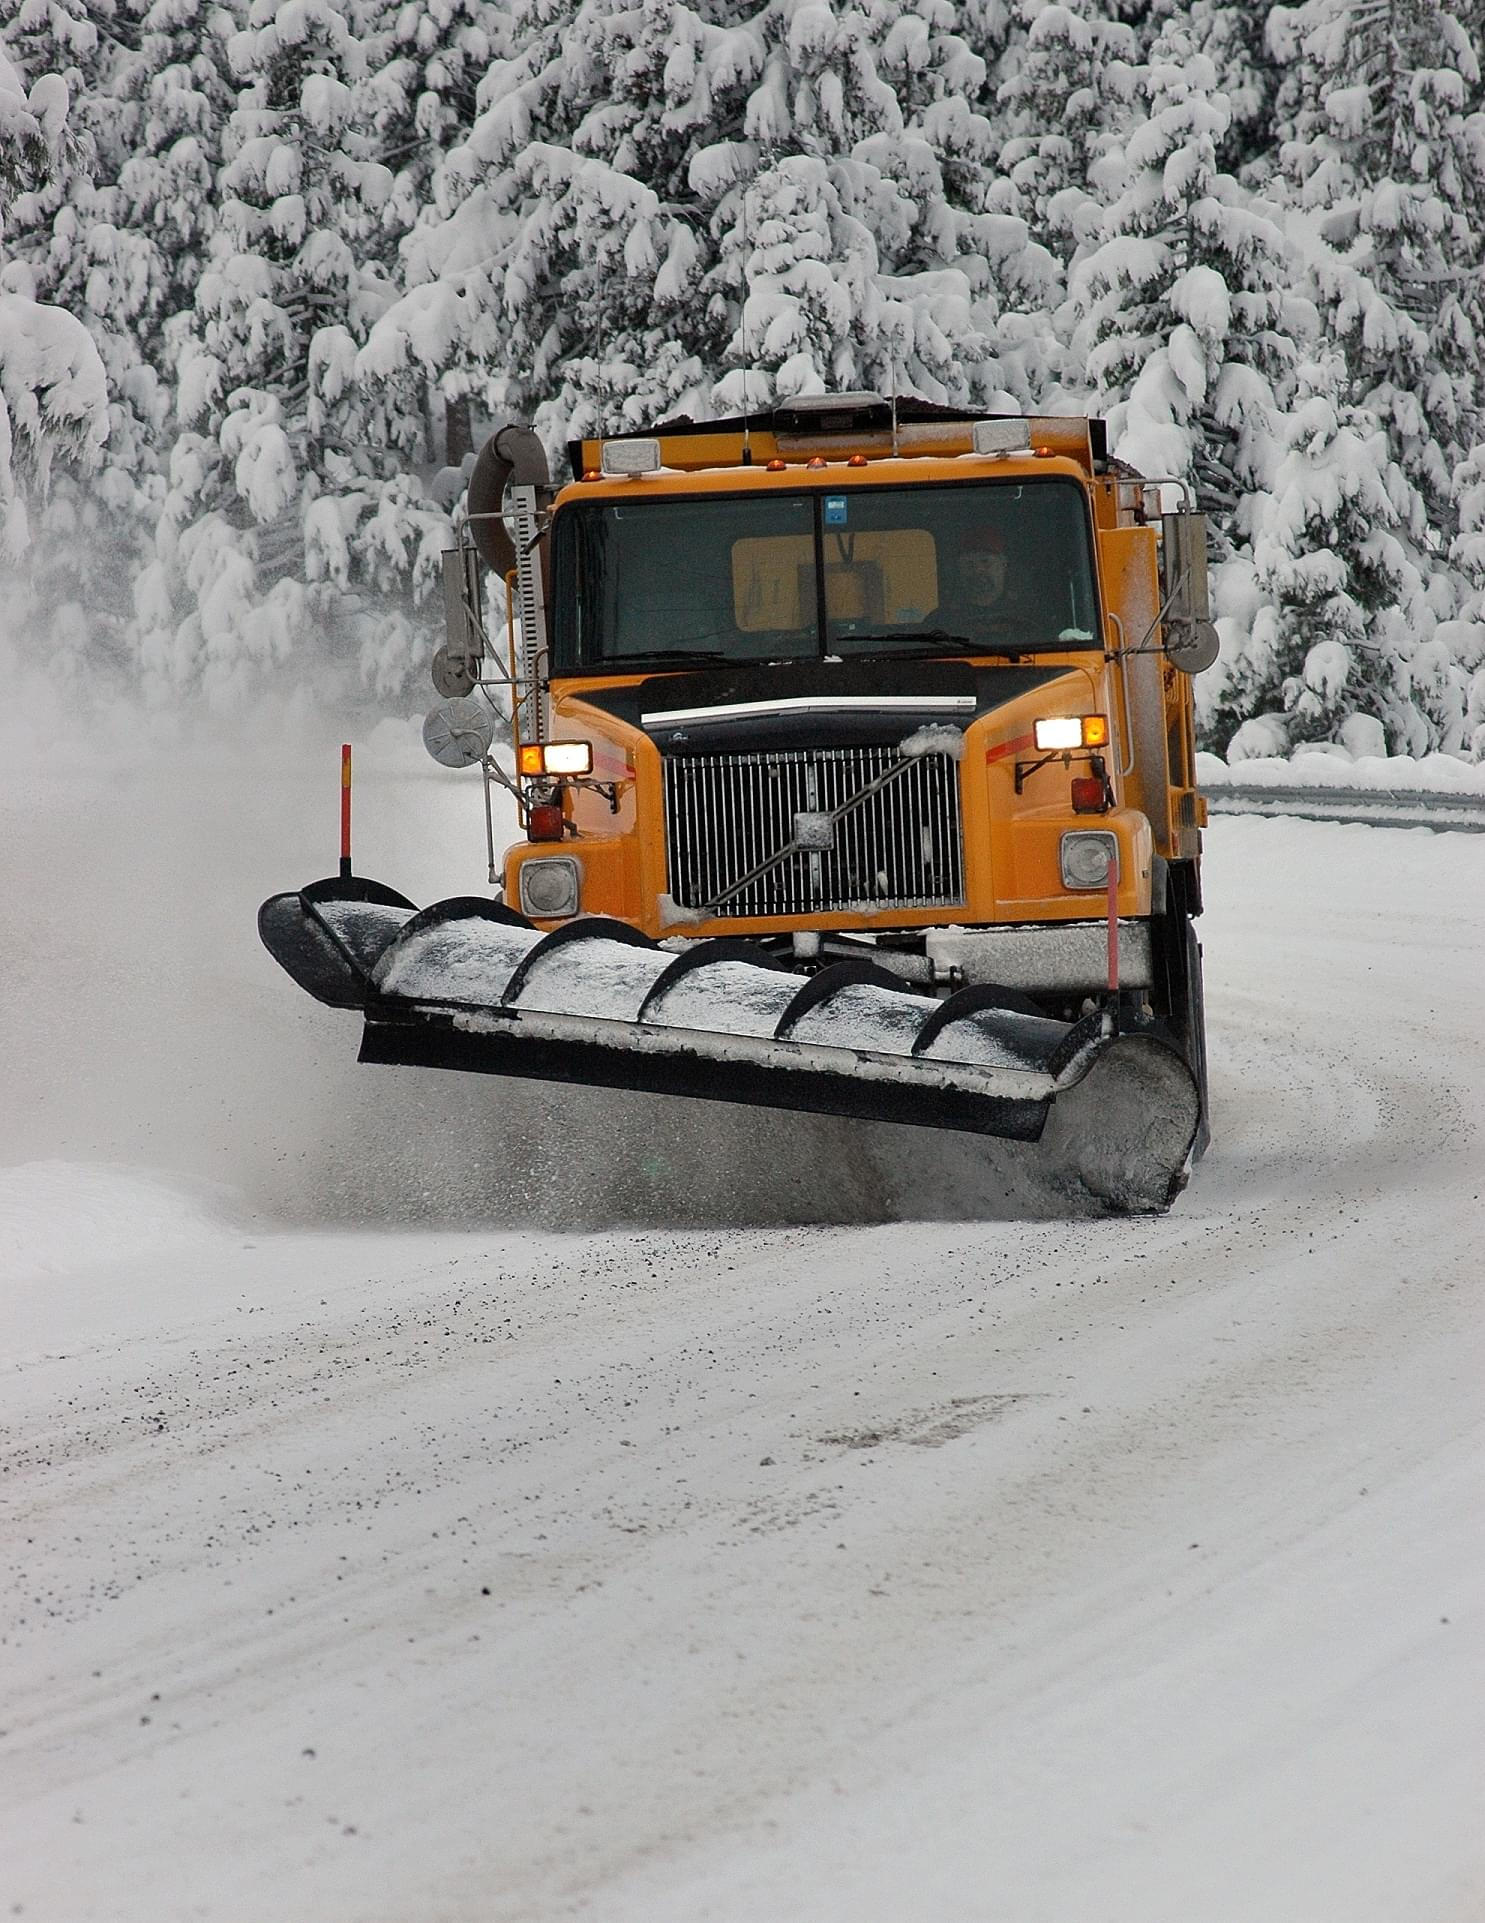 All 1,800 IDOT state plows out working Illinois roads